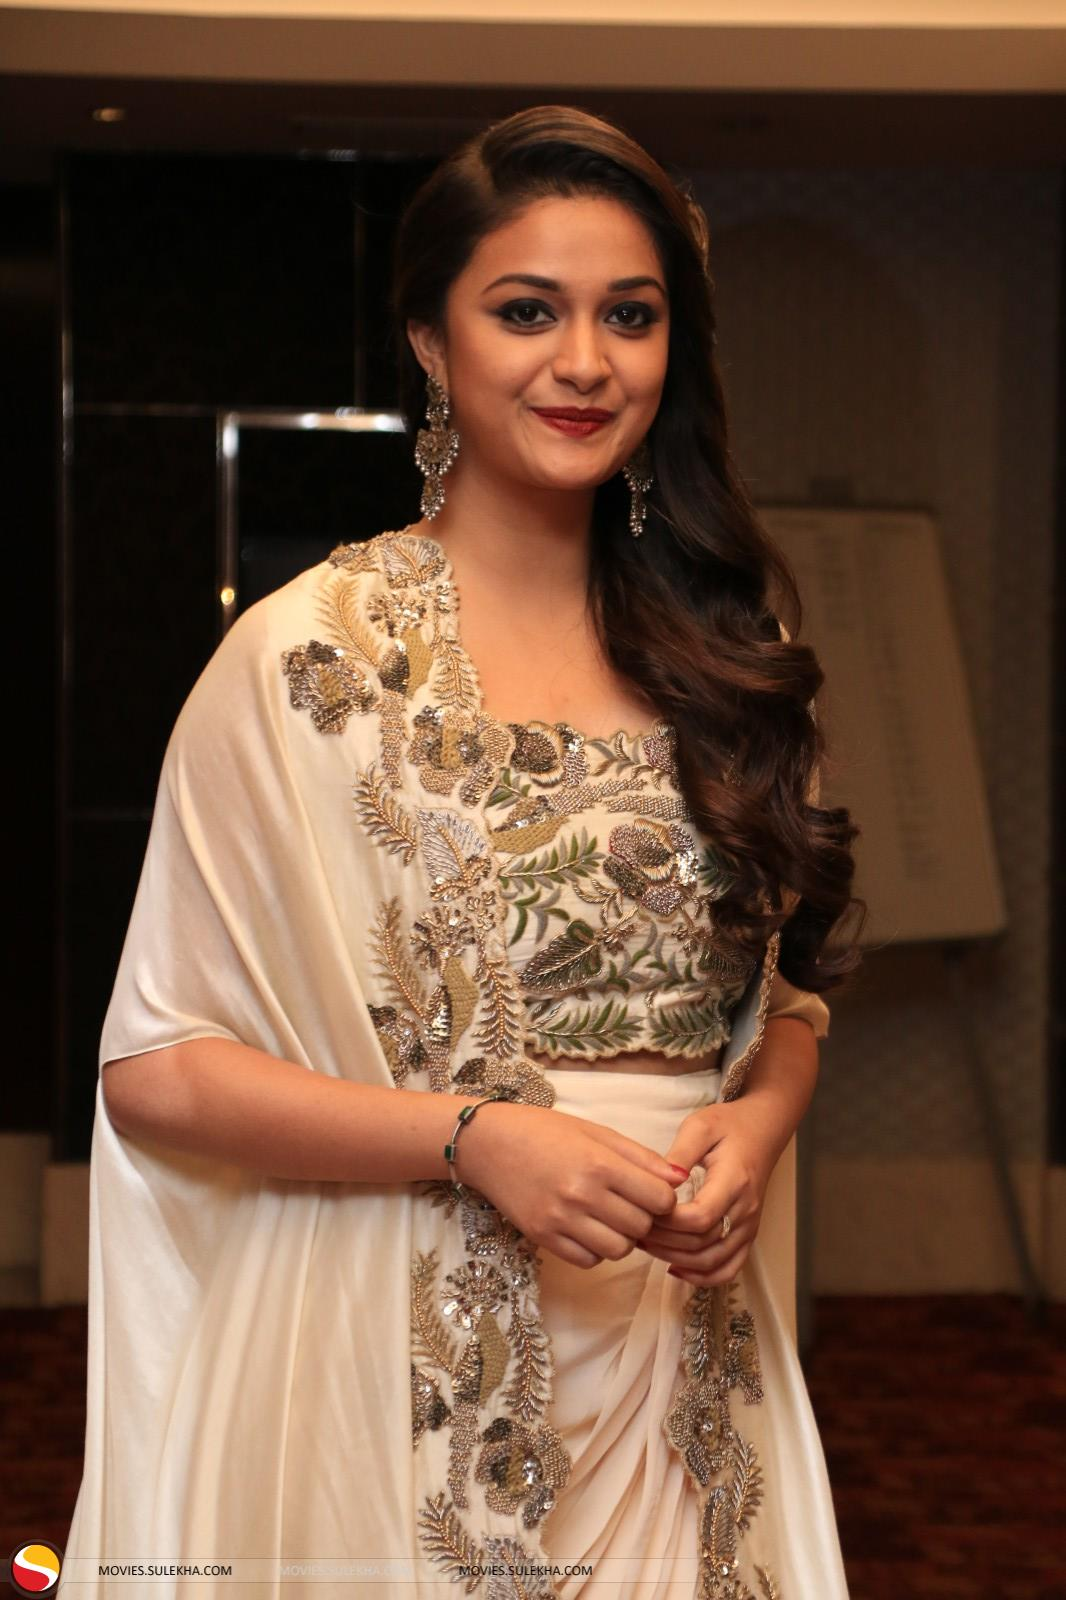 Keerthi Suresh nude (38 photo), Ass, Sideboobs, Feet, cleavage 2020